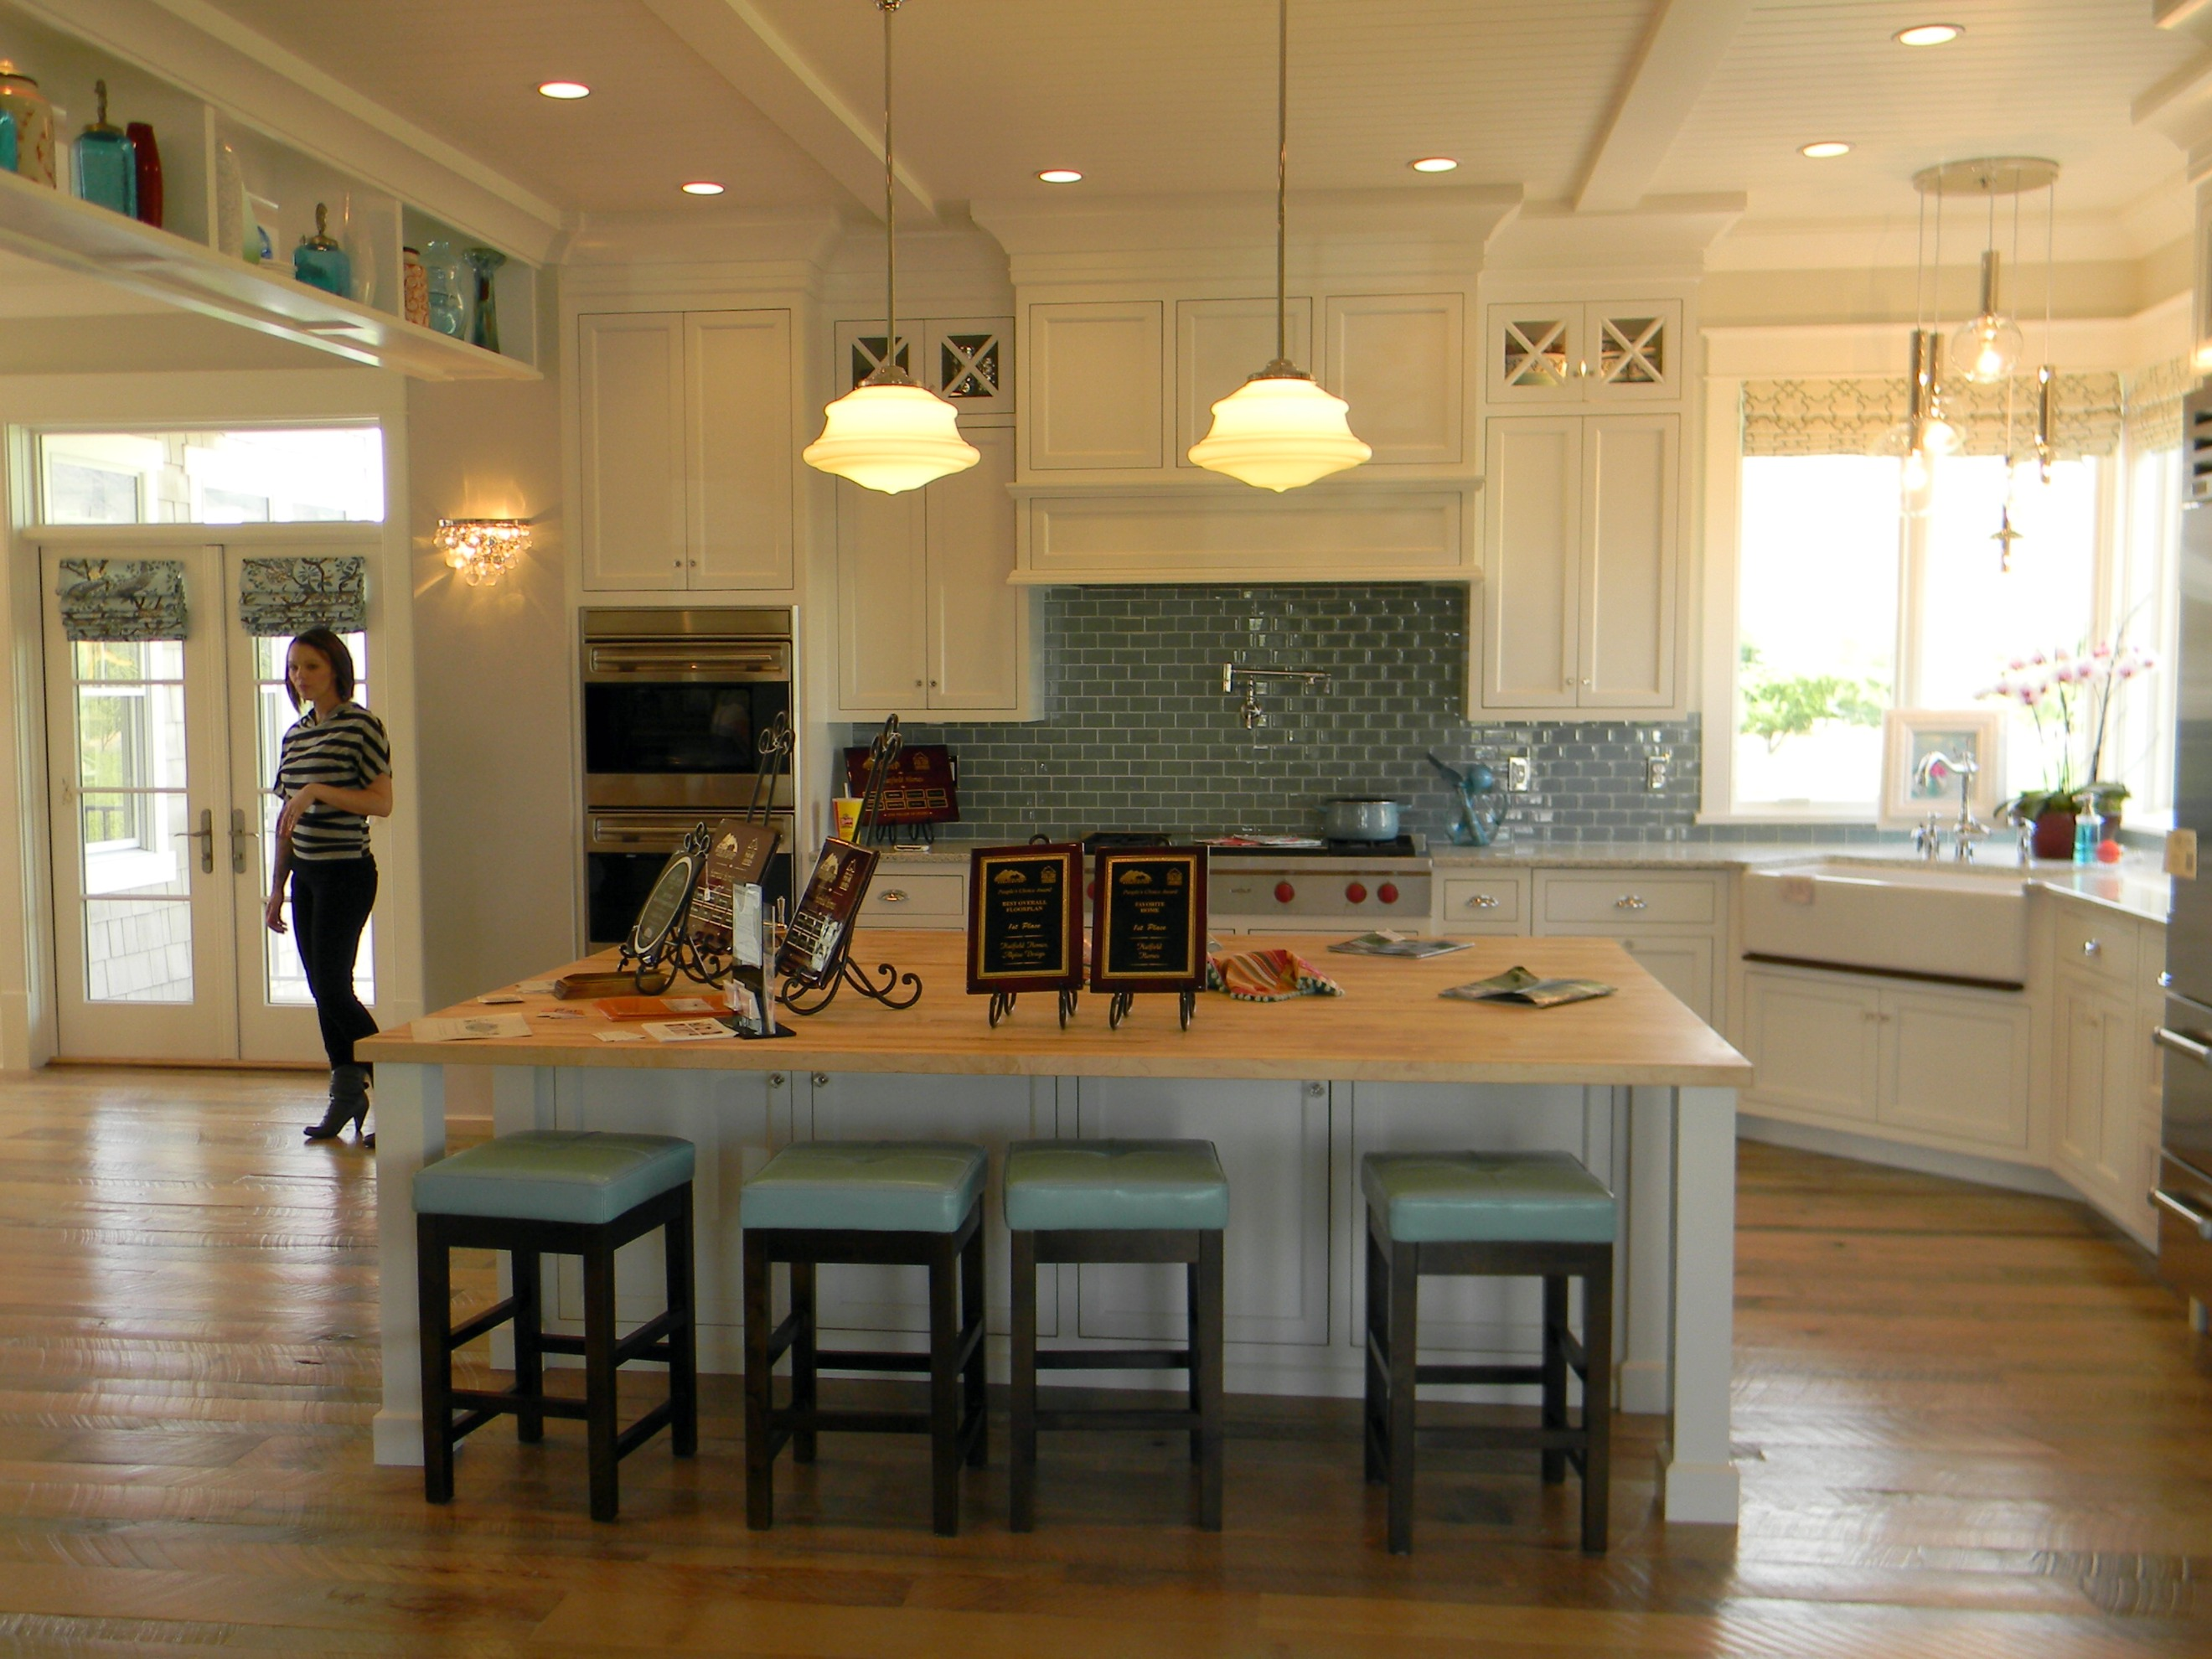 My Favorite Home in the Parade of Homes Organize and Decorate